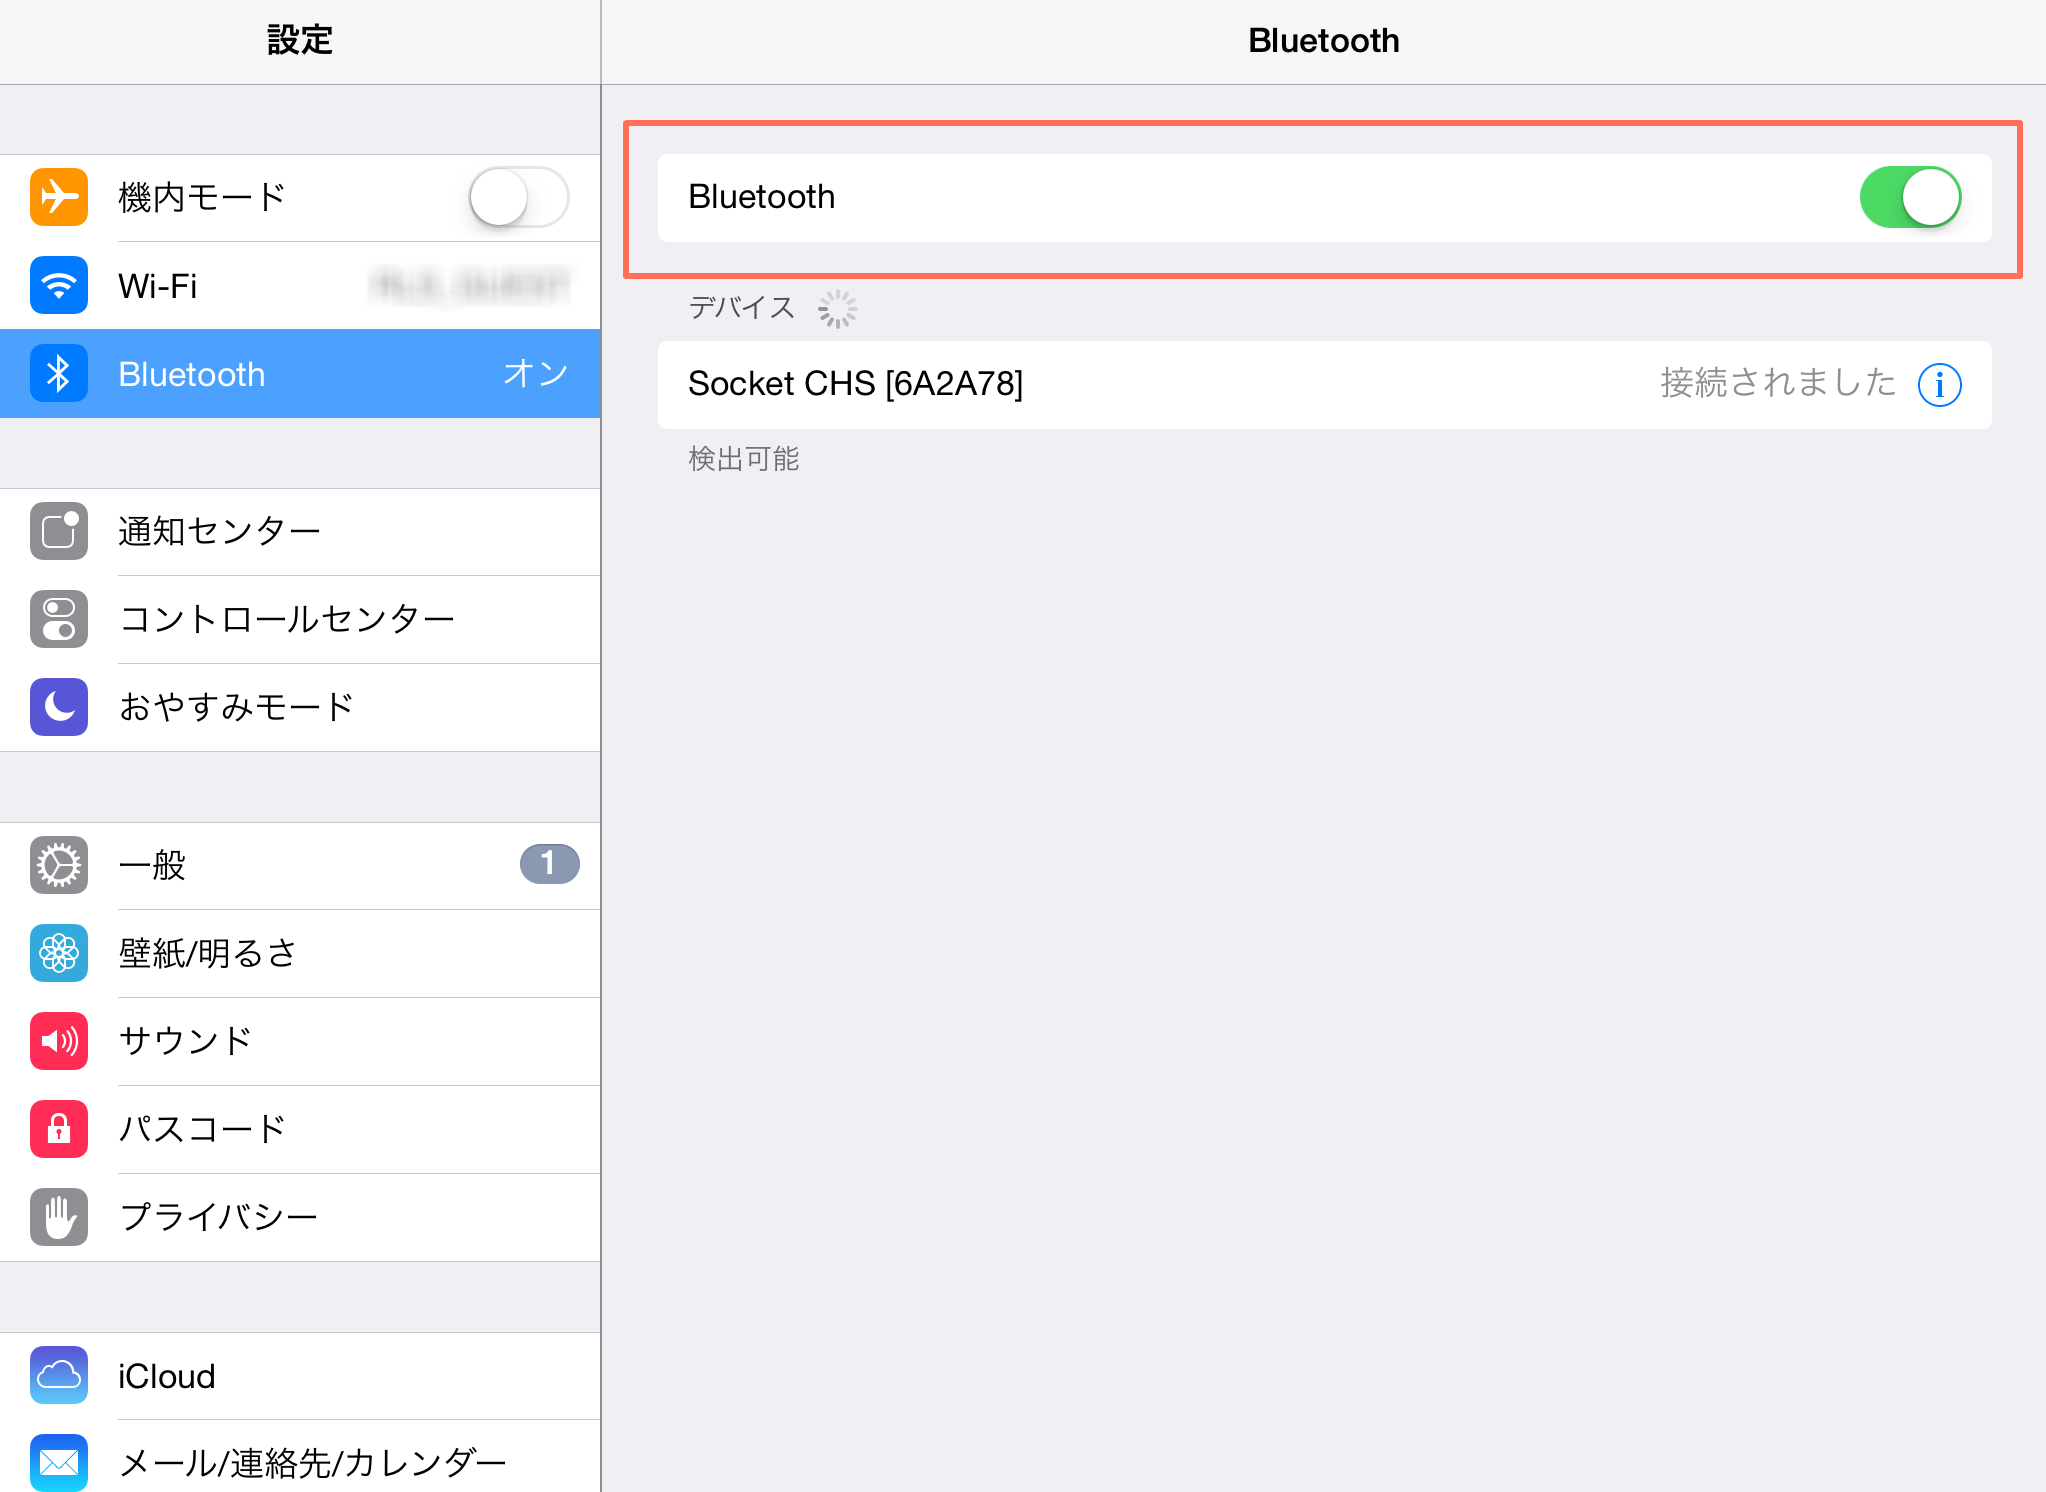 iPad Bluetooth設定 Bluetooth接続オン